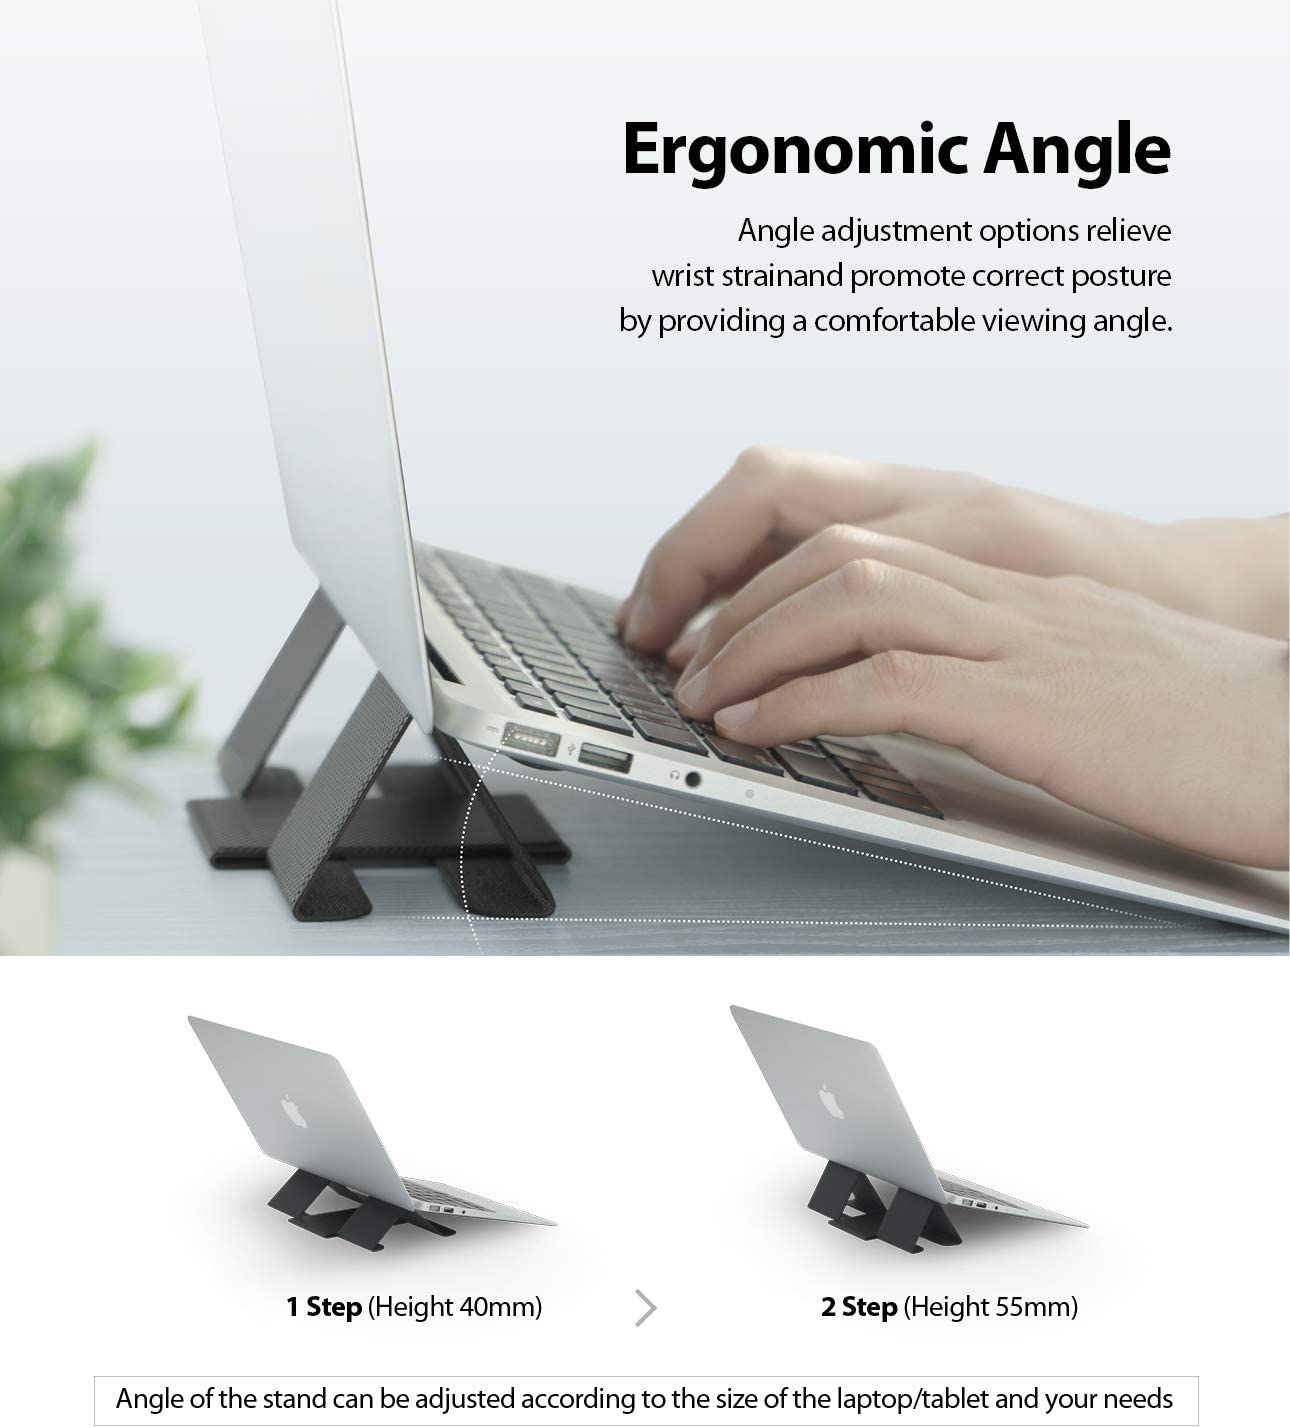 Ringke Folding Stand 2 Gray Faltbar und Tragbar Schwerlos Laptop St/änder Bel/üftet Cooling f/ür MacBook Notebook Computer iPad Tablet